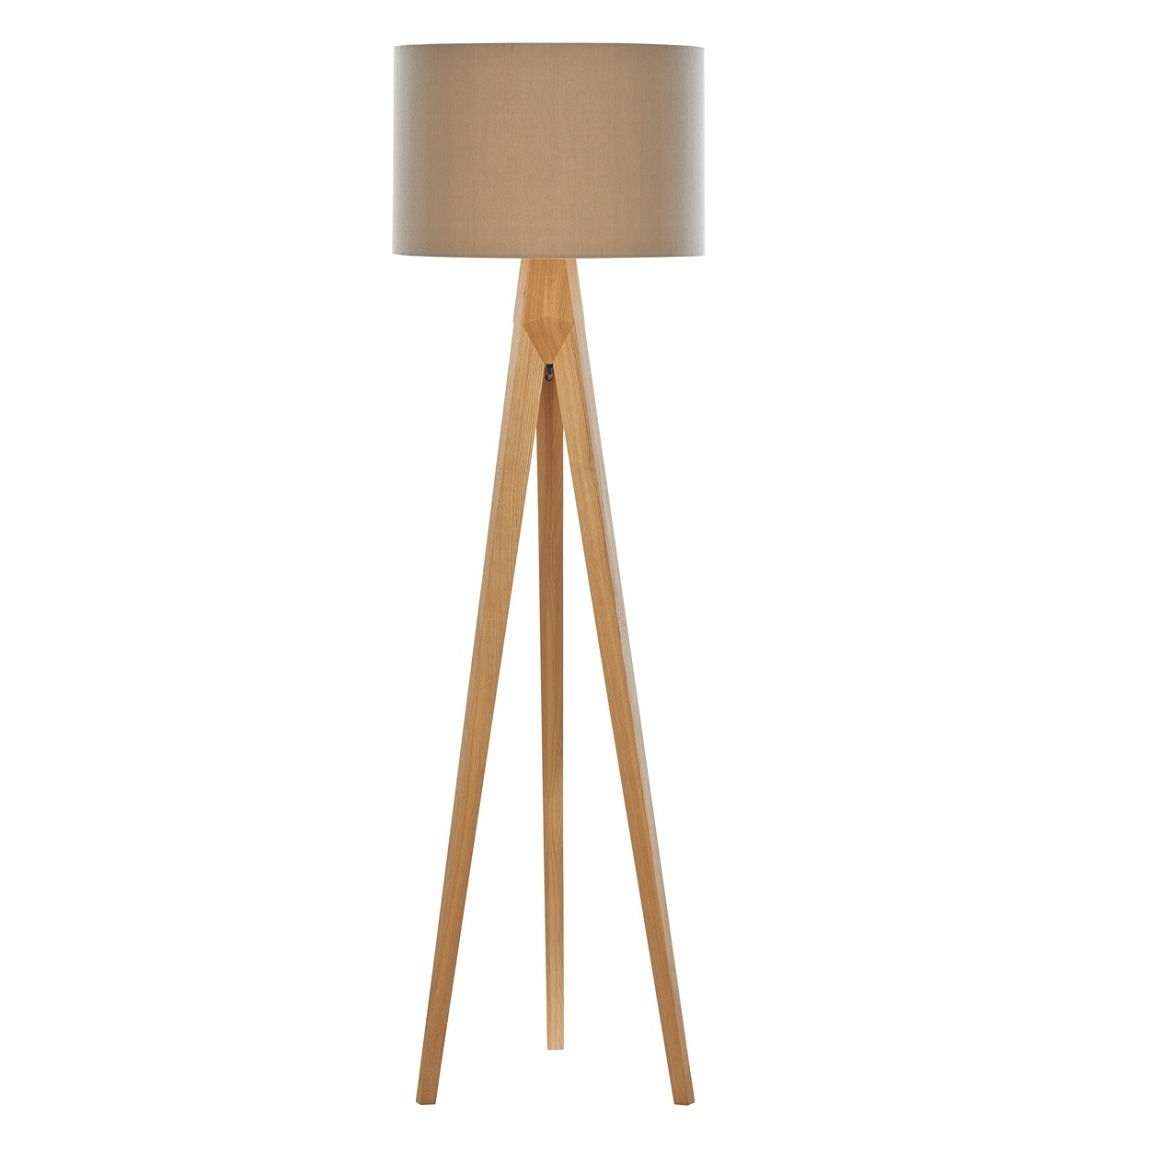 Debenhams Home Collection 'hudson' Wooden Tripod Floor Lamp Living With Regard To Trendy Debenhams Table Lamps For Living Room (View 9 of 15)